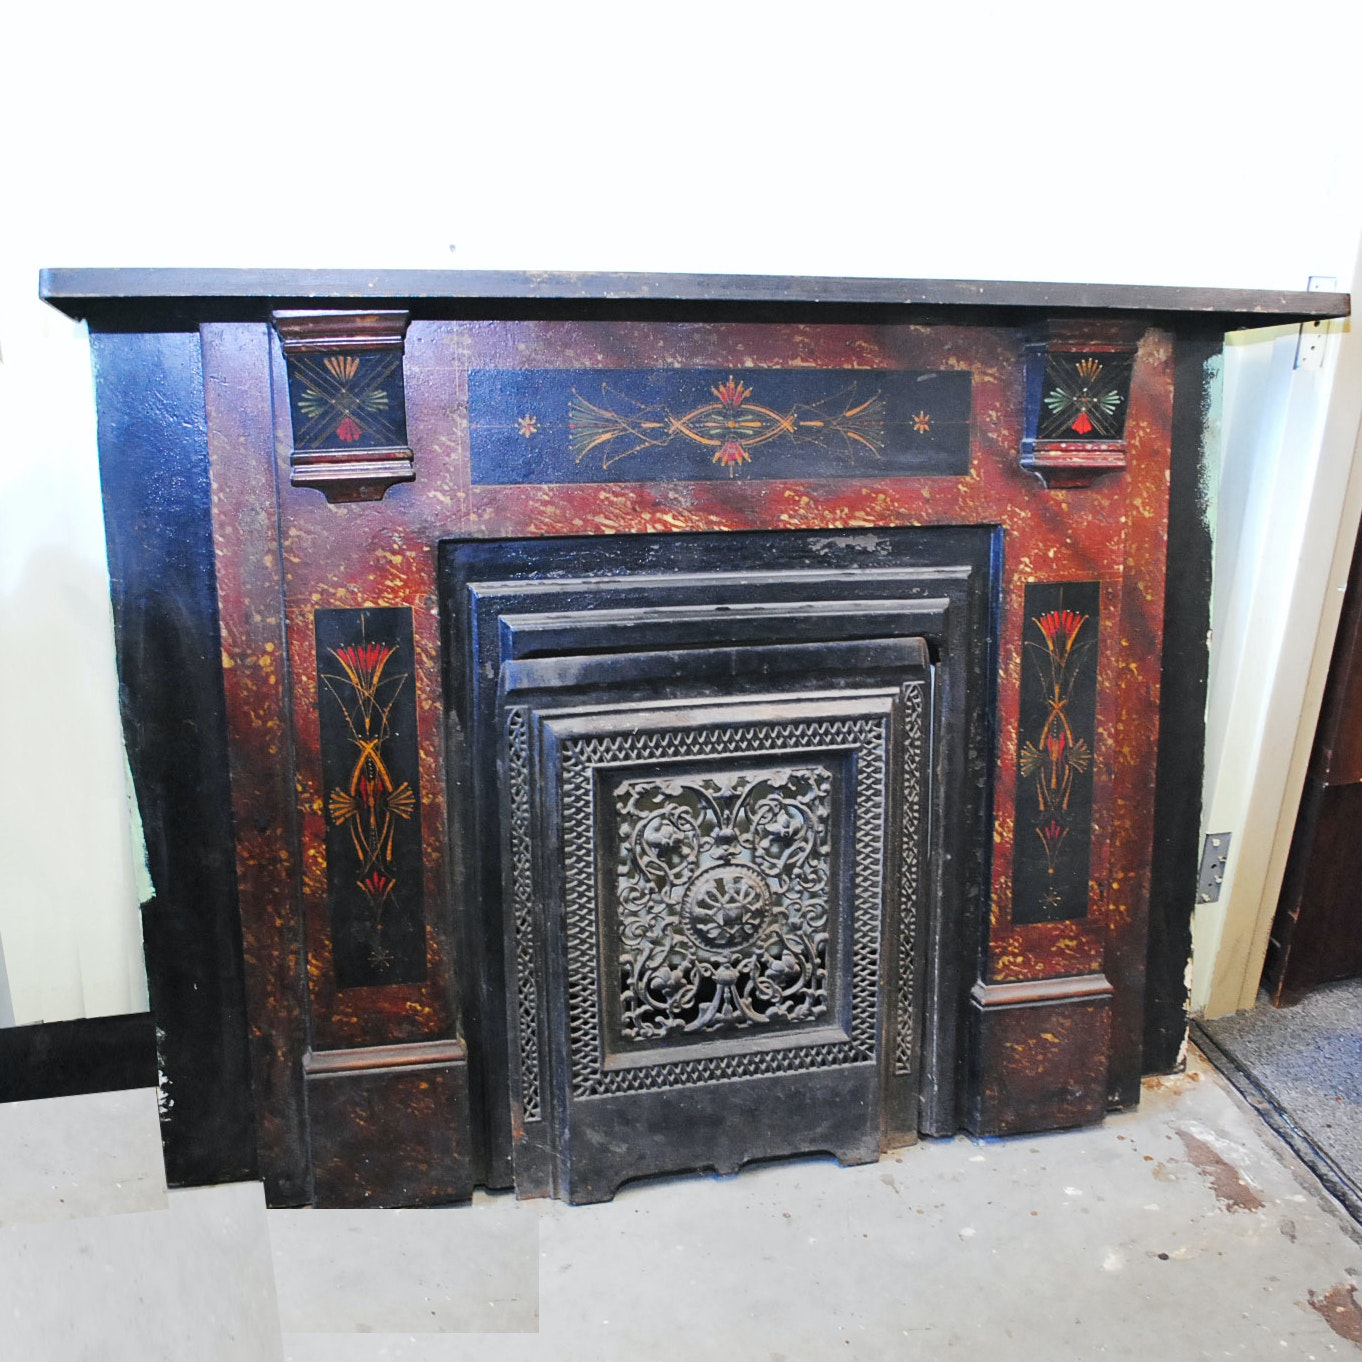 Antique Faux Marbled and Stenciled Iron Mantle